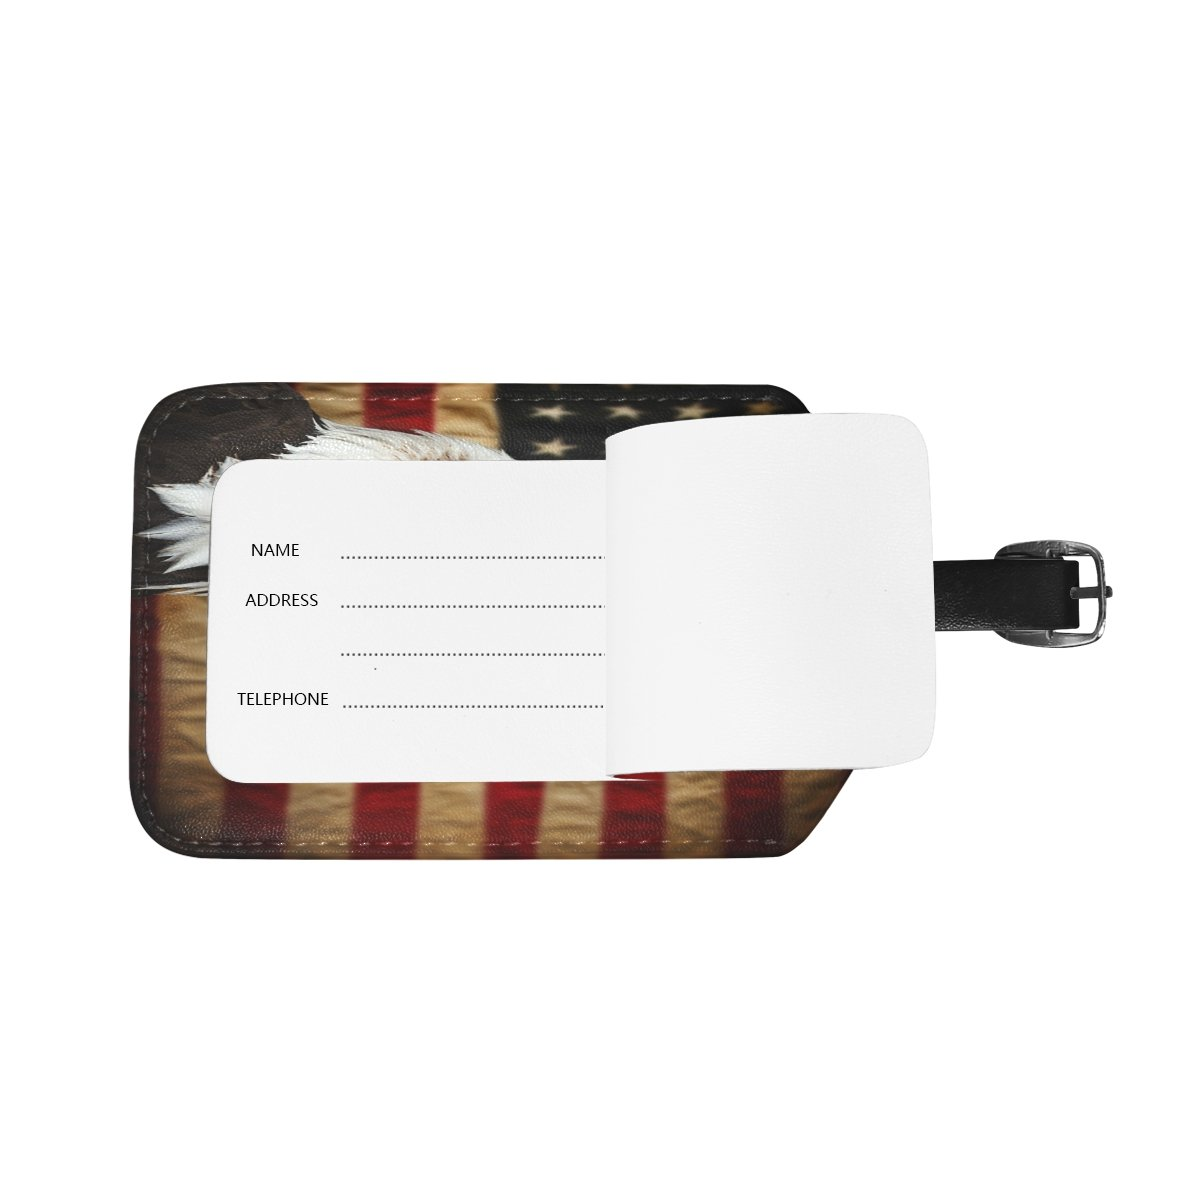 Saobao Travel Luggage Tag Bald Eagle With American Flag PU Leather Baggage Suitcase Travel ID Bag Tag 1Pcs